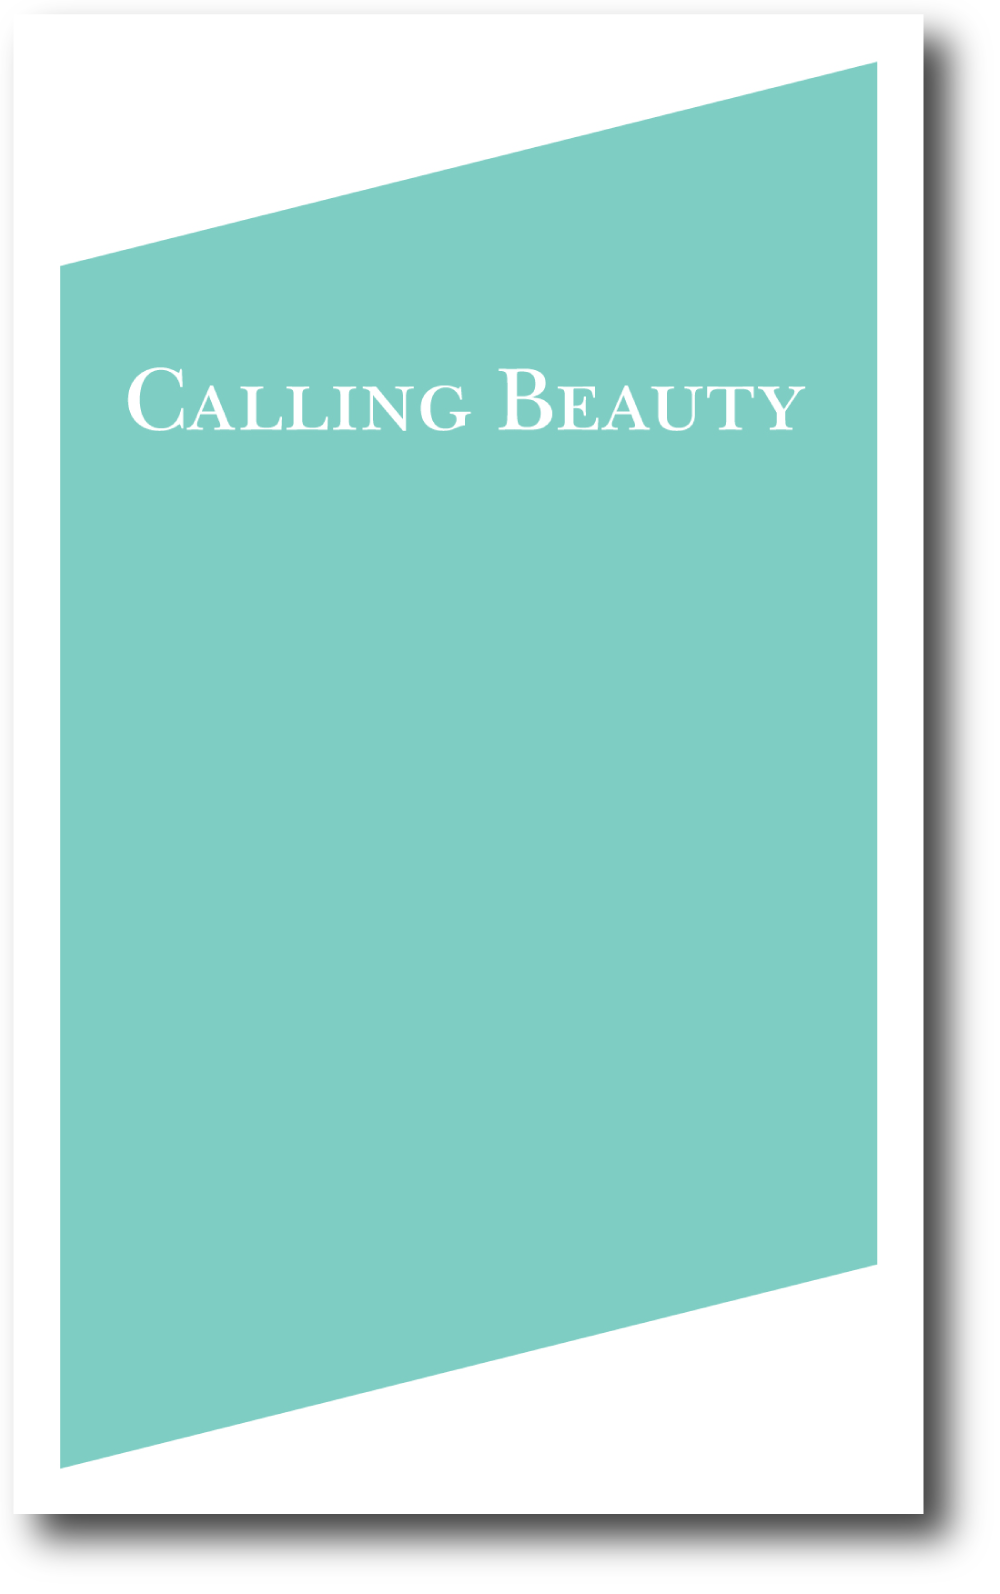 Calling Beauty , published by Bureau for Open Culture, 2010; designed by Nate Padavick, 96 pages; 8.25 x 5 inches